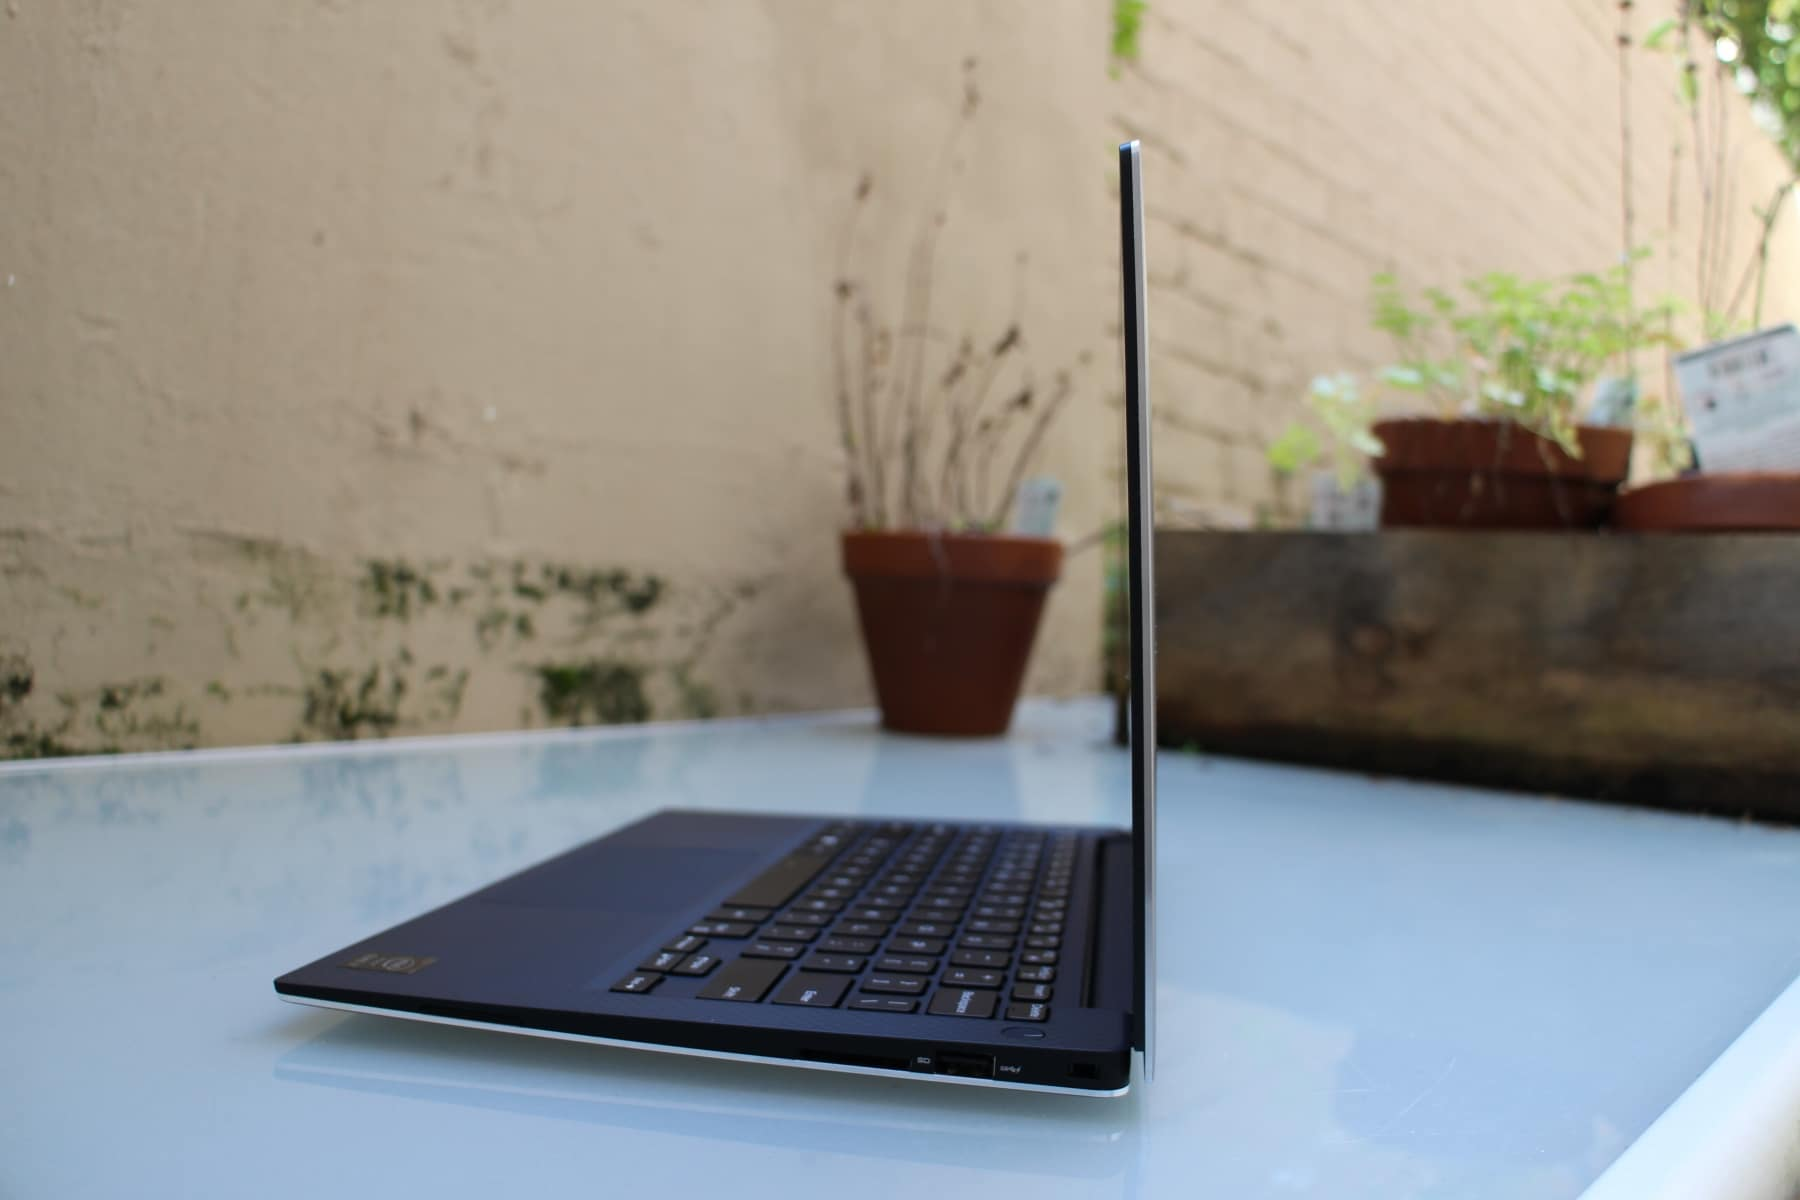 dell xps side view